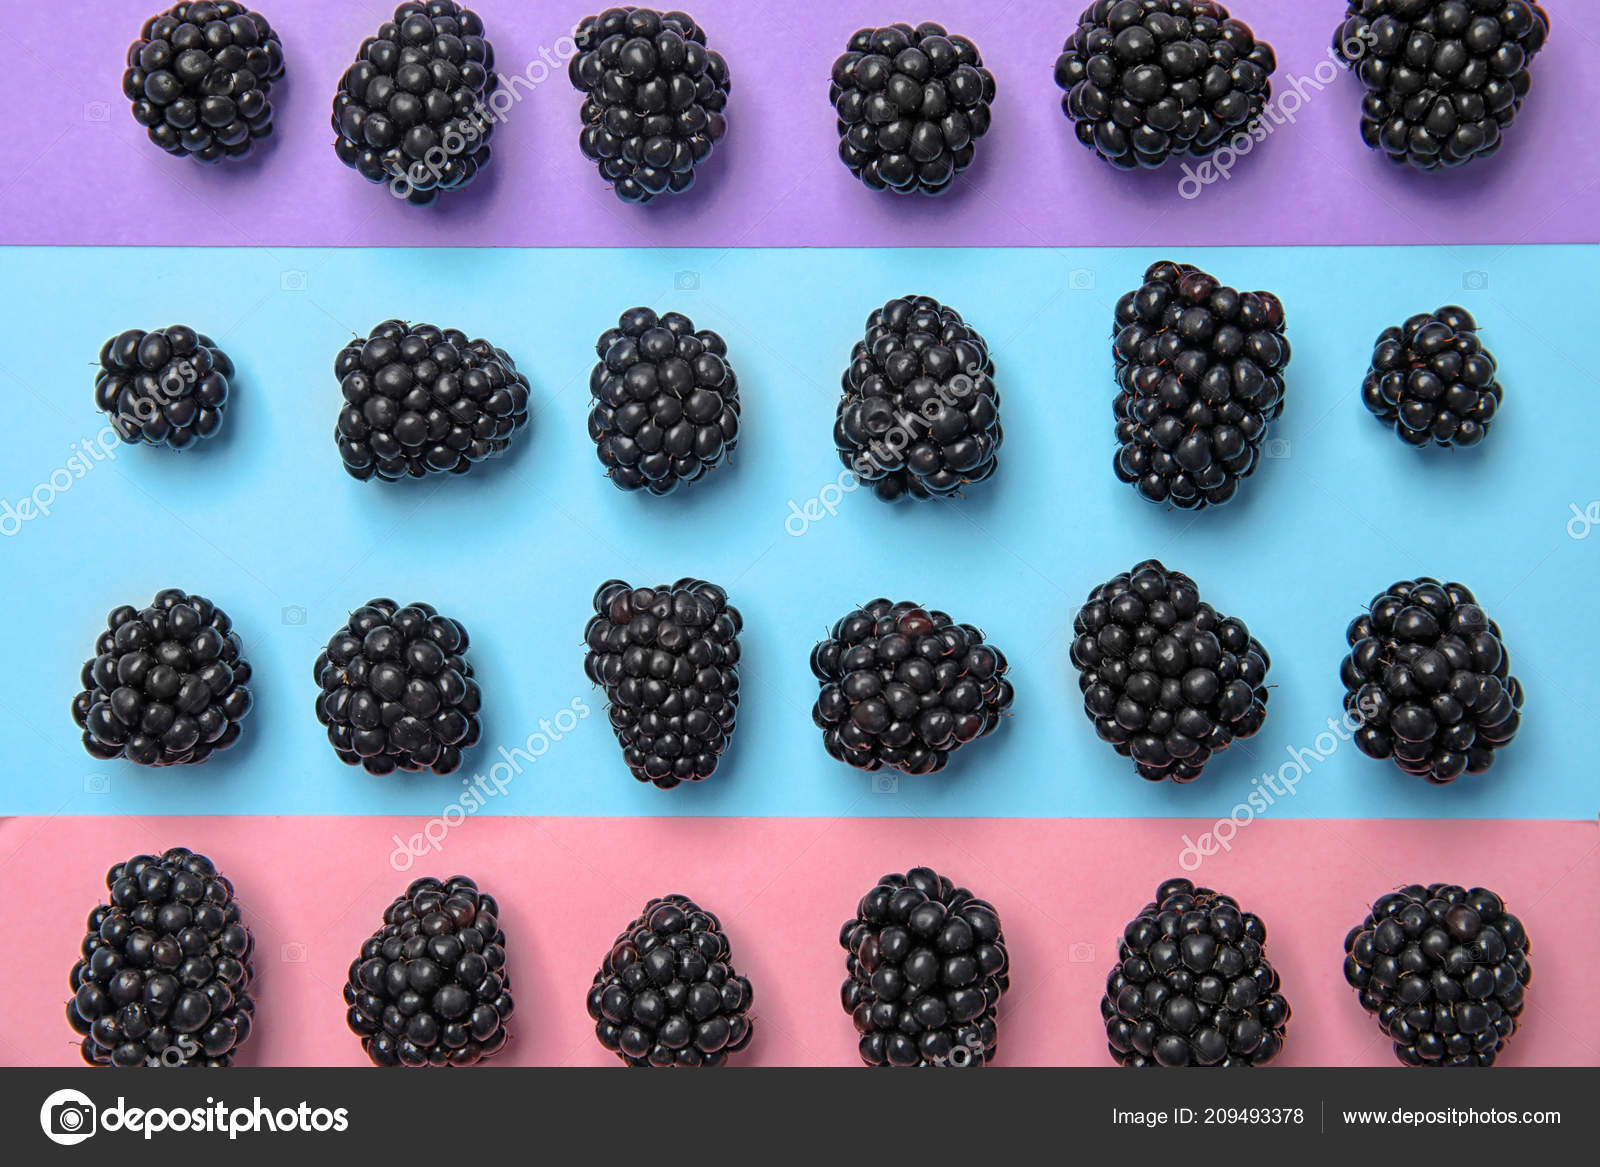 Blackberries Pictures To Color